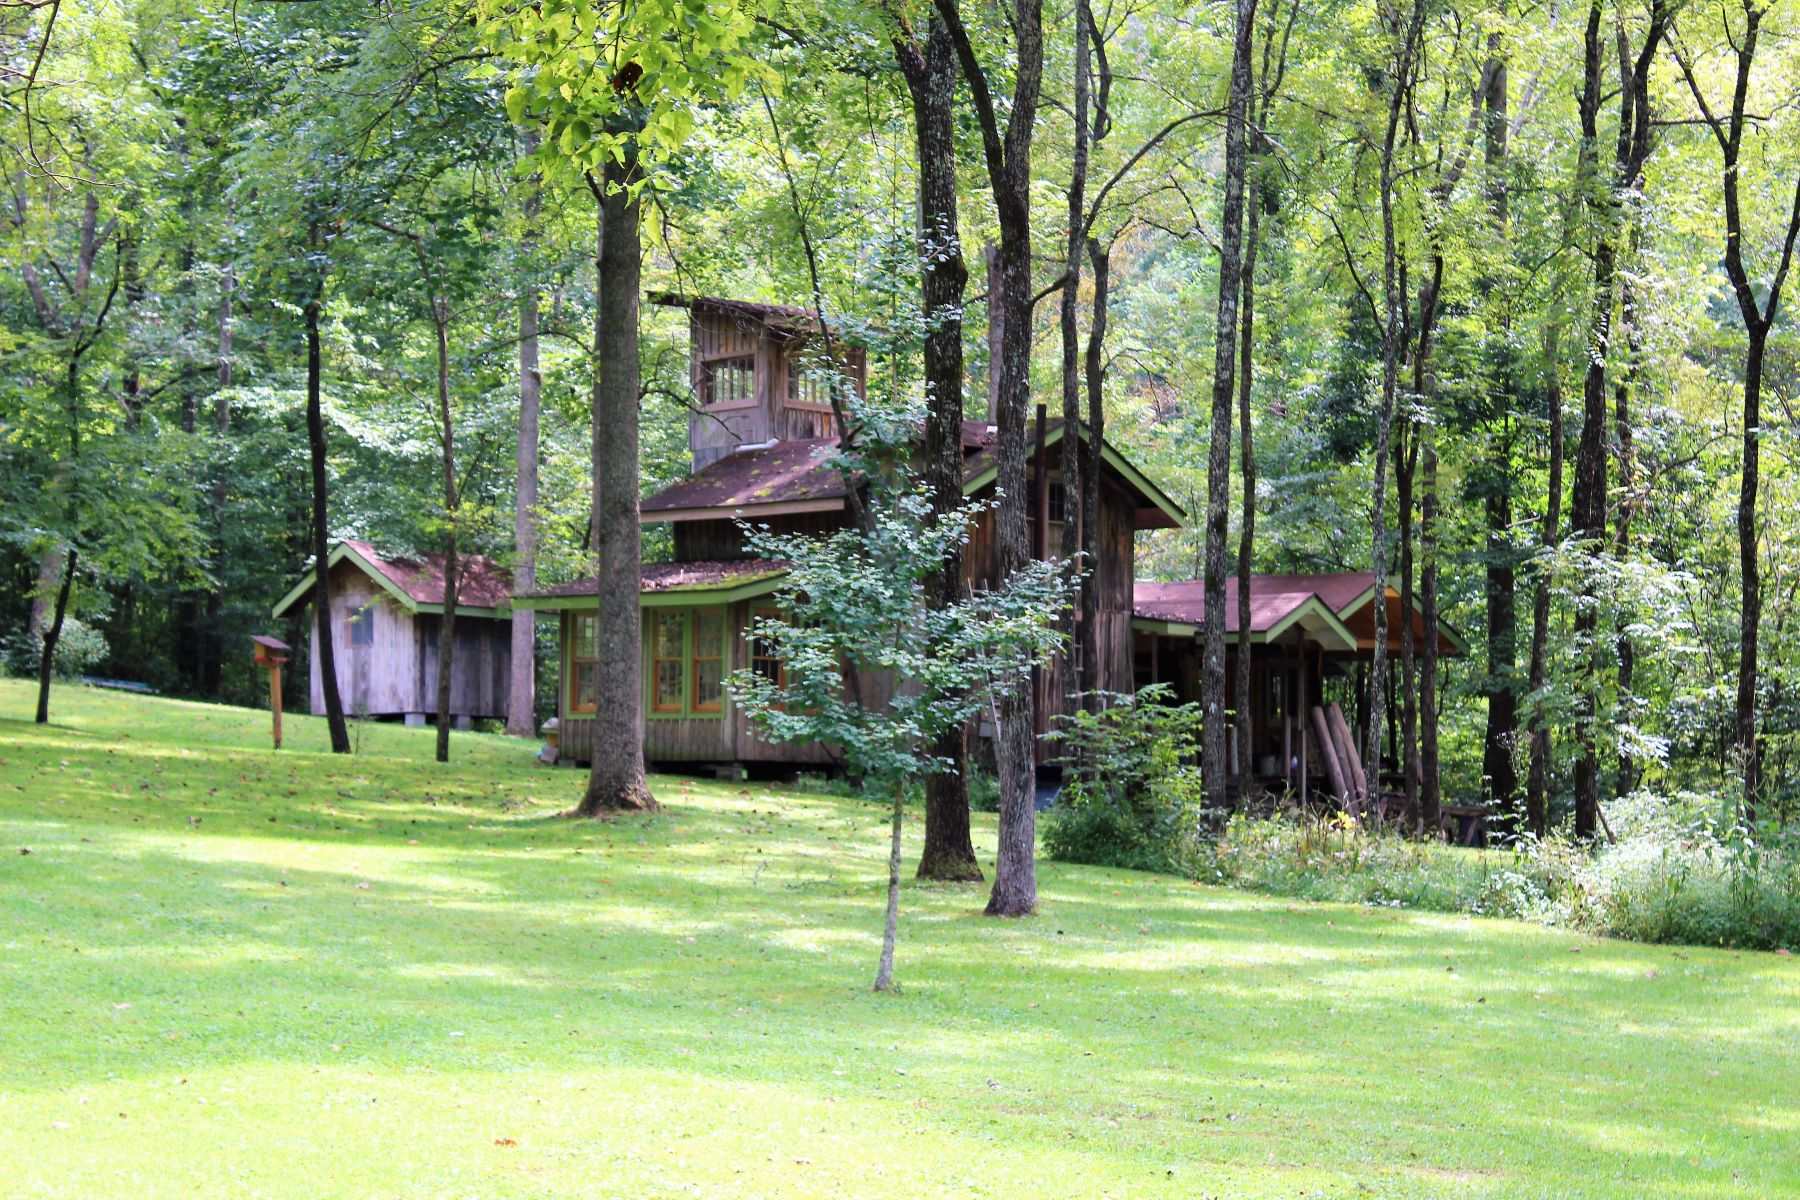 Land for Sale at 1100 Pumpkin Hollow Road 1100 Pumpkin Hollow Road Frenchburg, Kentucky 40380 United States